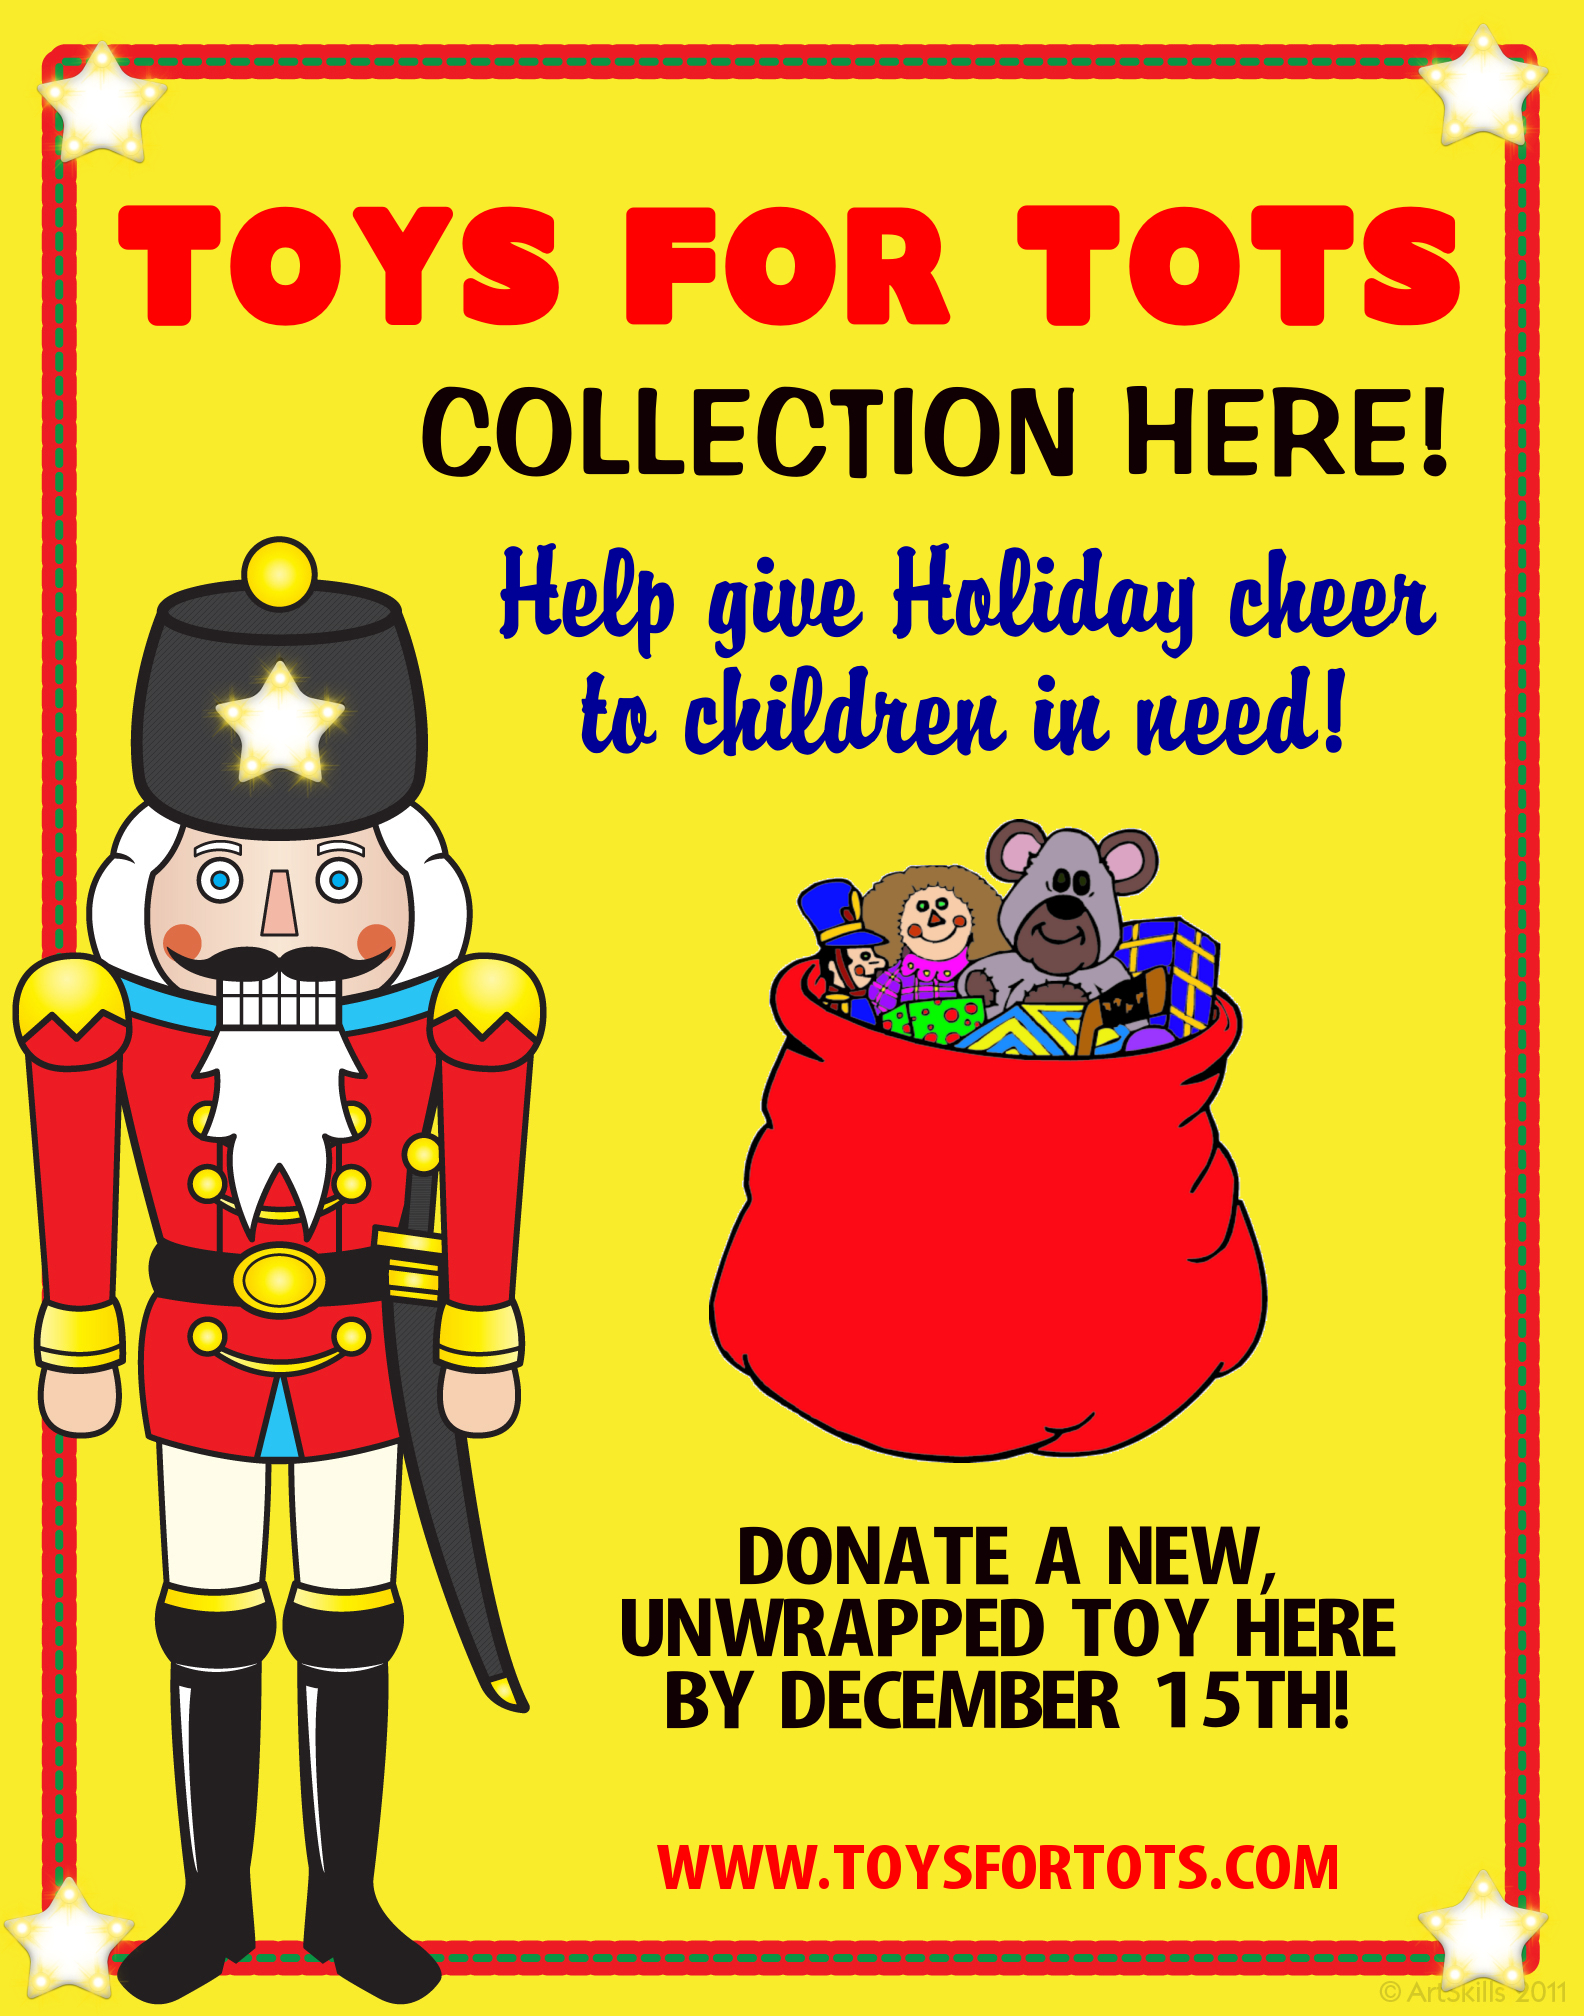 Toys For Tots Toys For Tots Fundraising Poster Fundraising